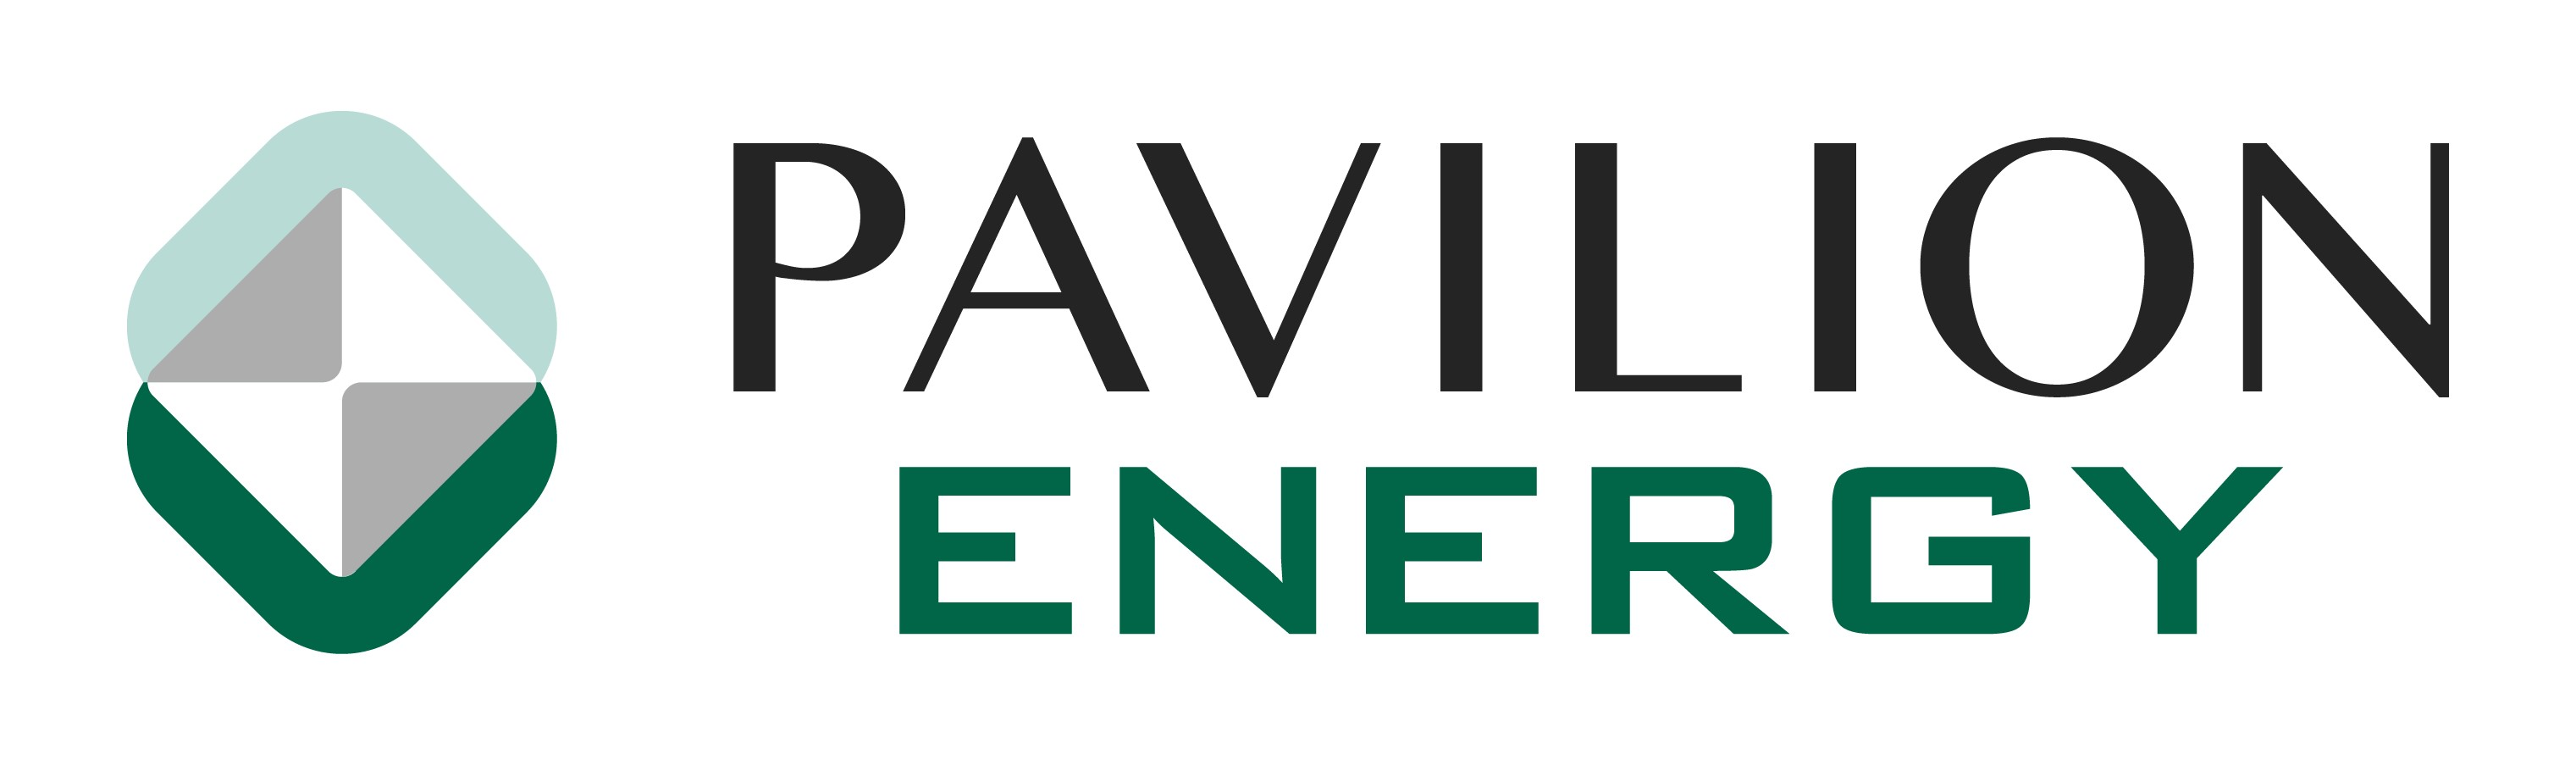 logo for Pavilion Energy